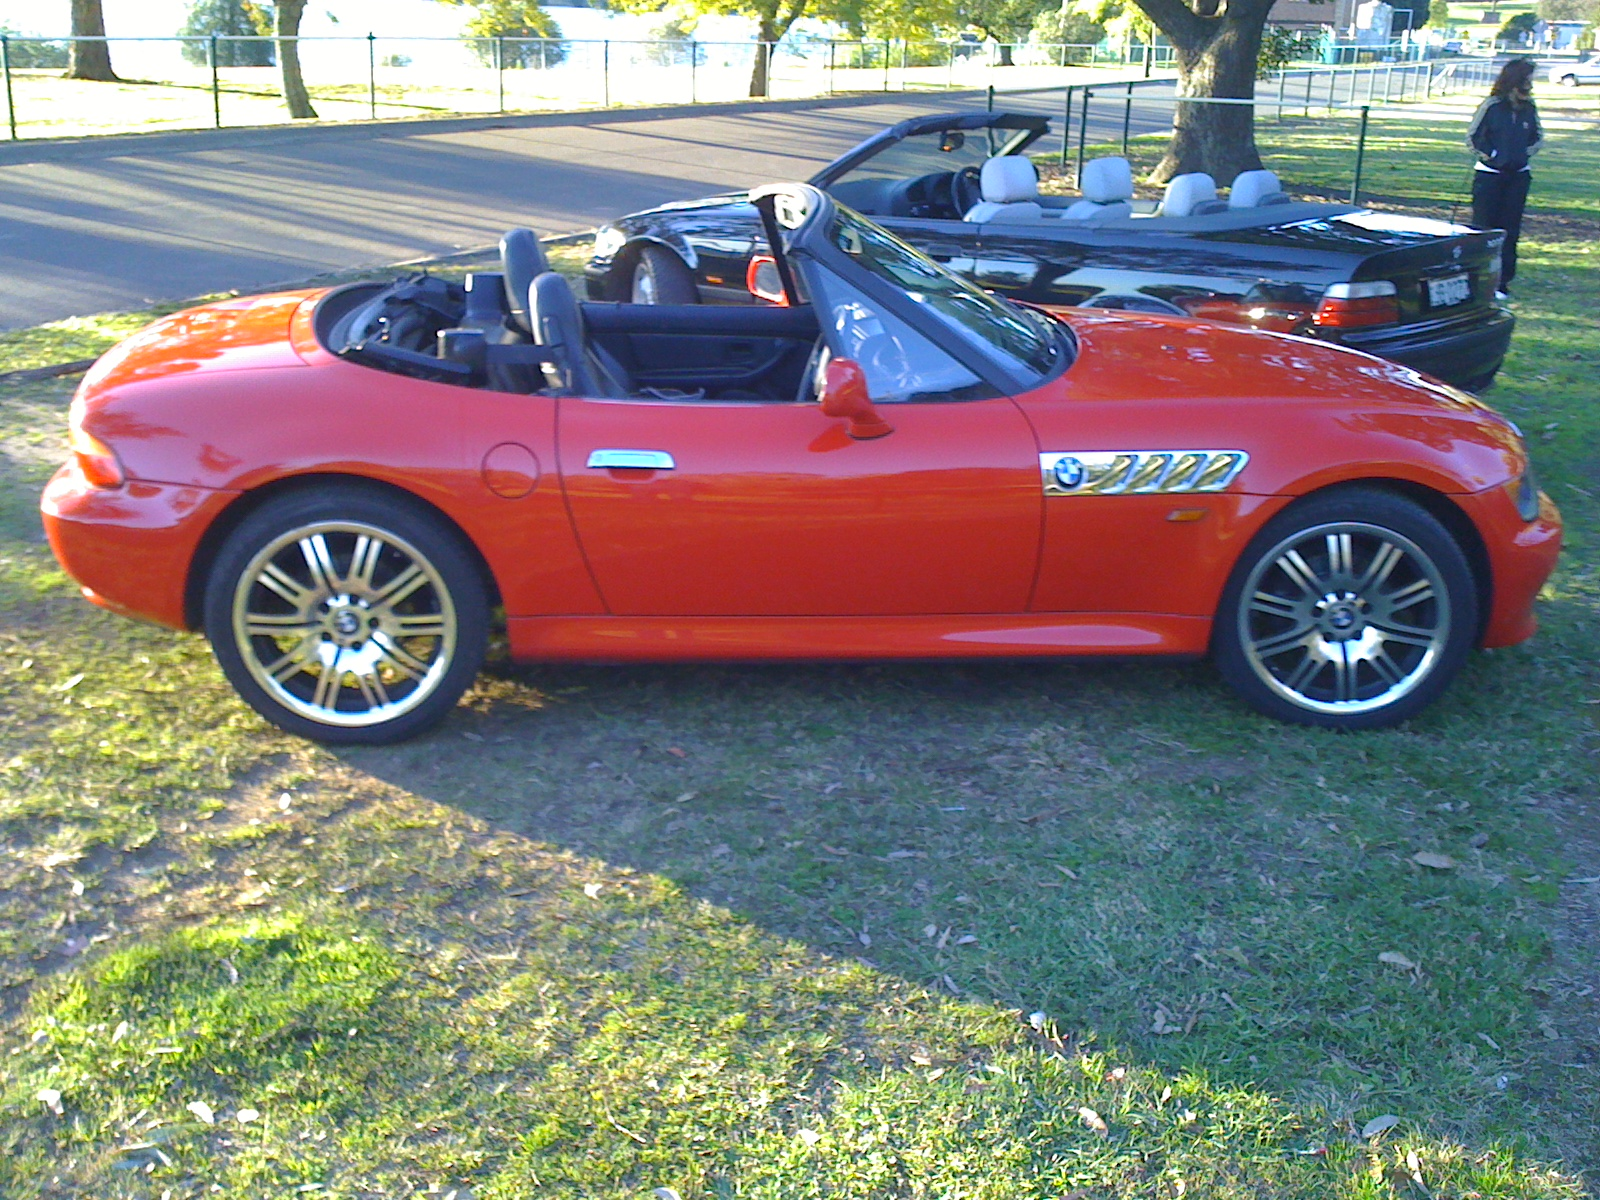 hight resolution of 1997 bmw z3 image 11